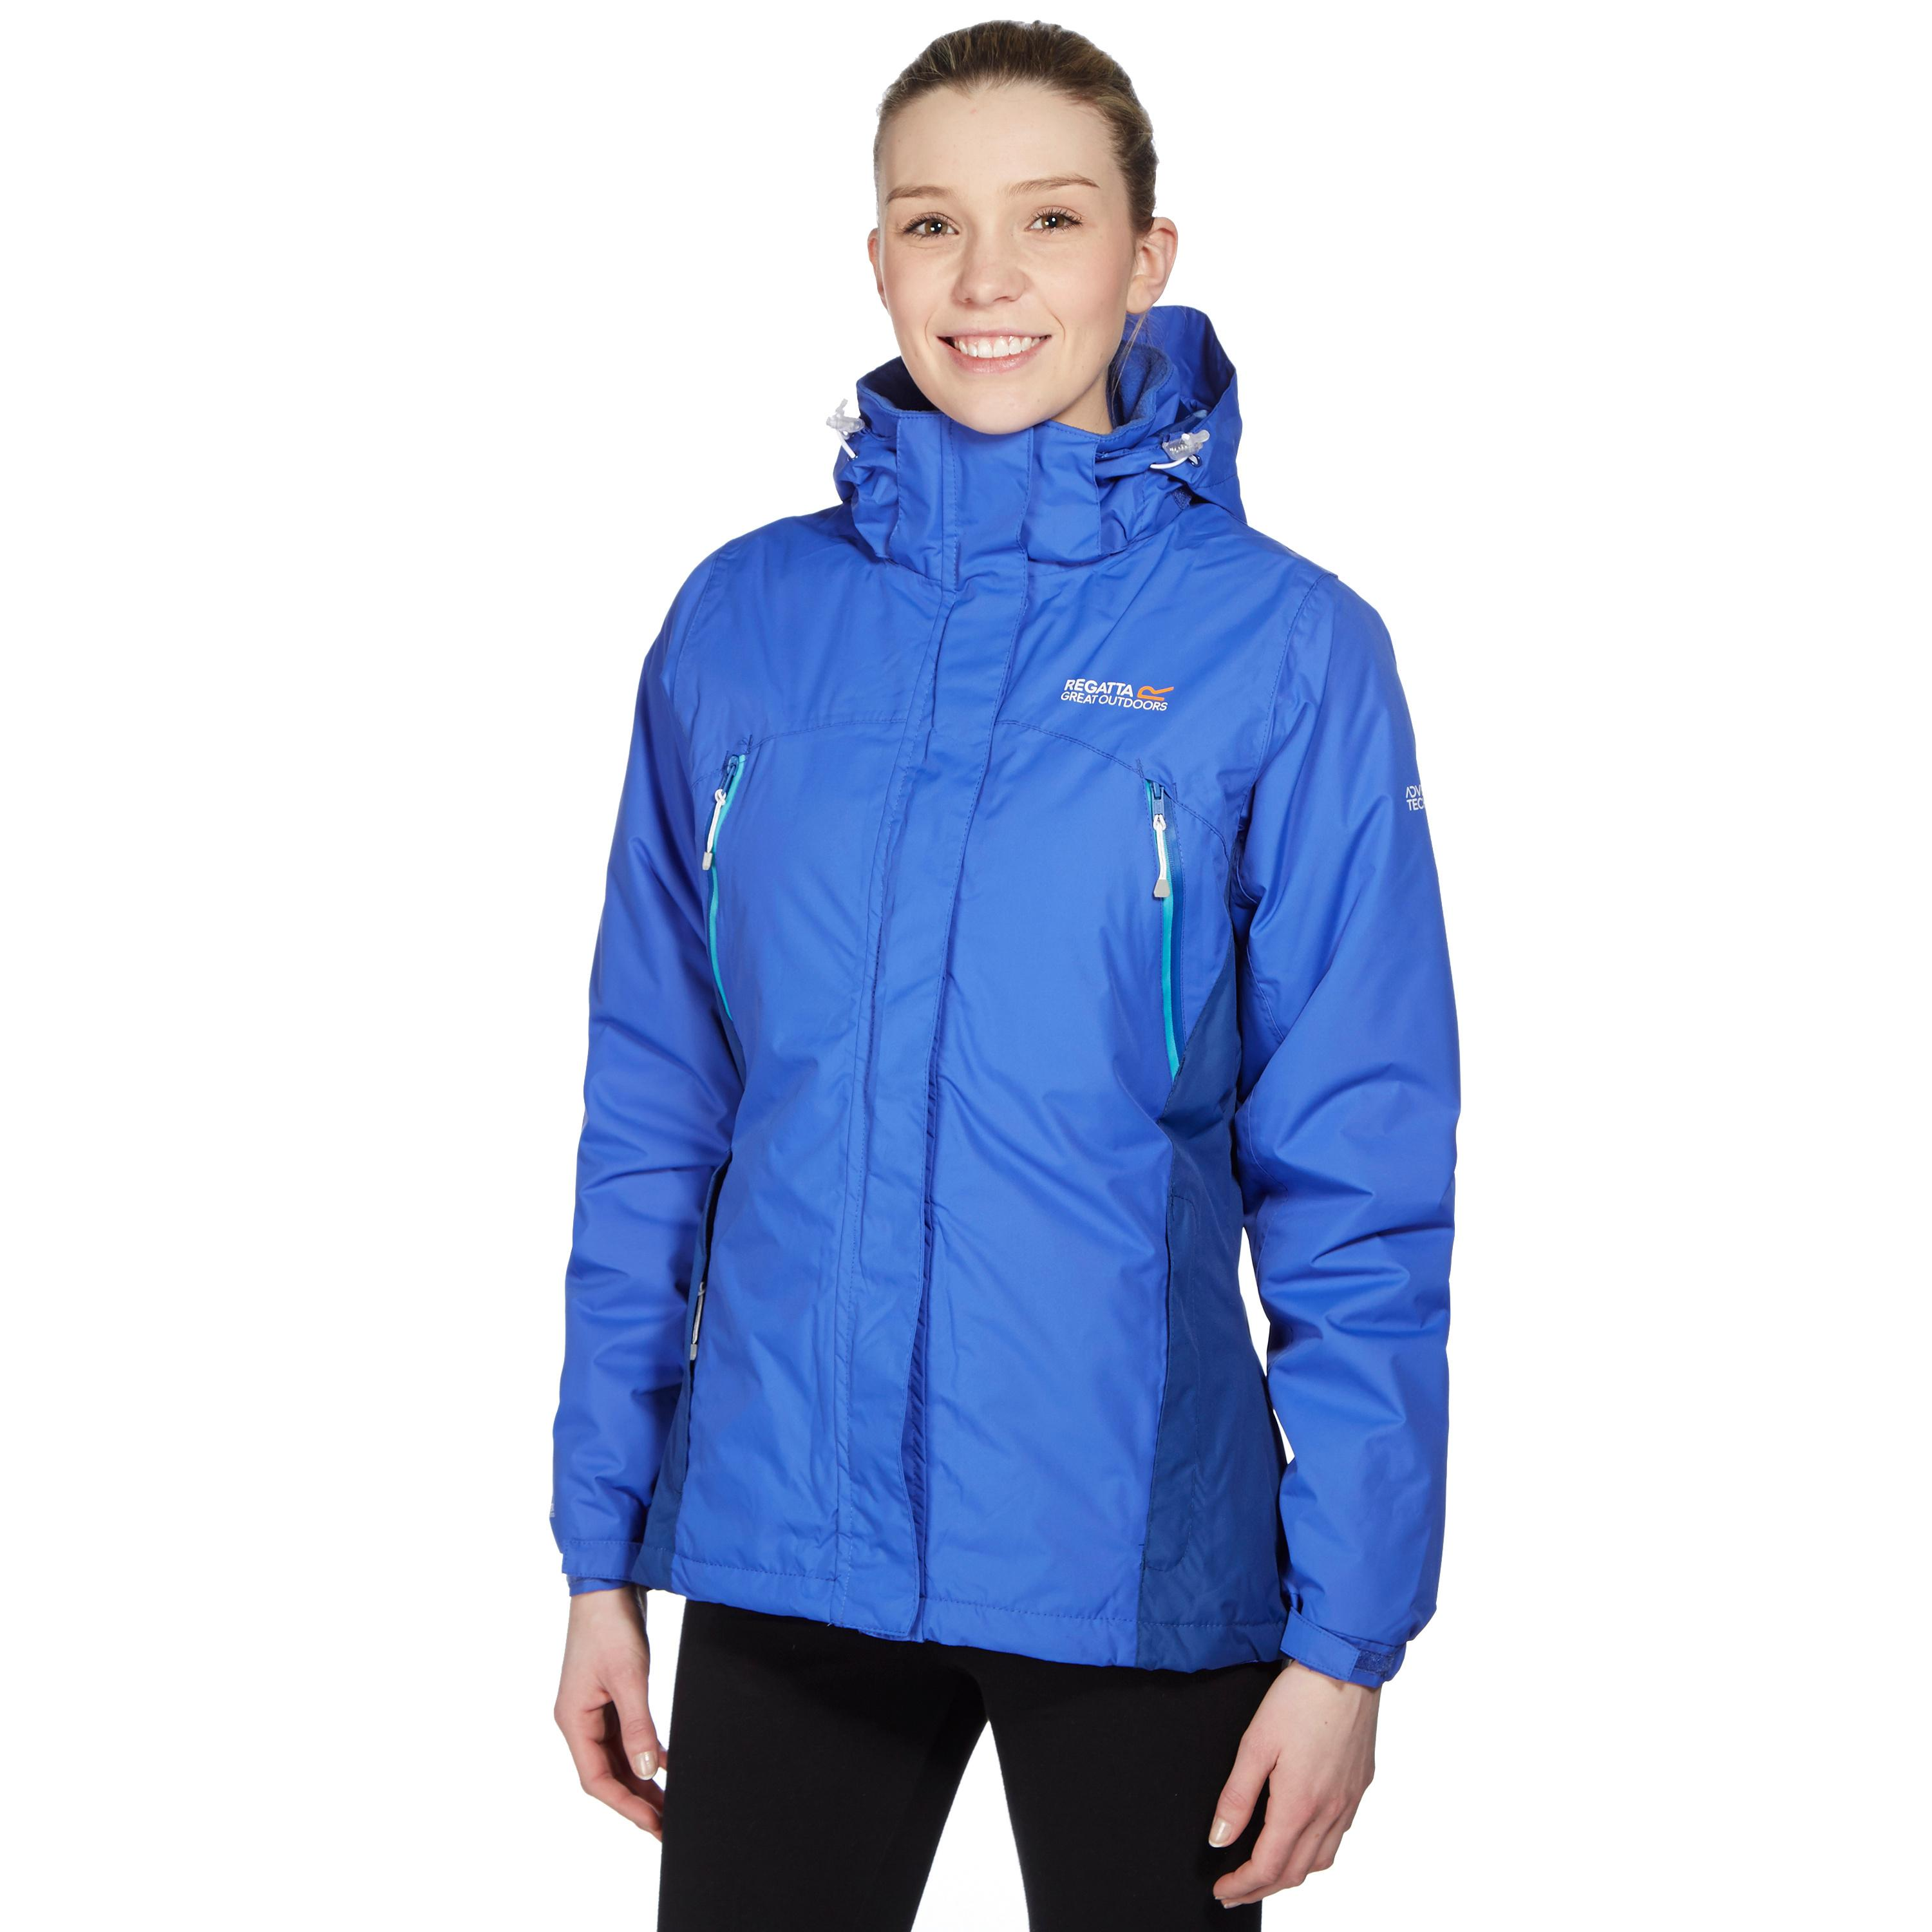 Regatta ladies coats and jackets – Novelties of modern fashion ...